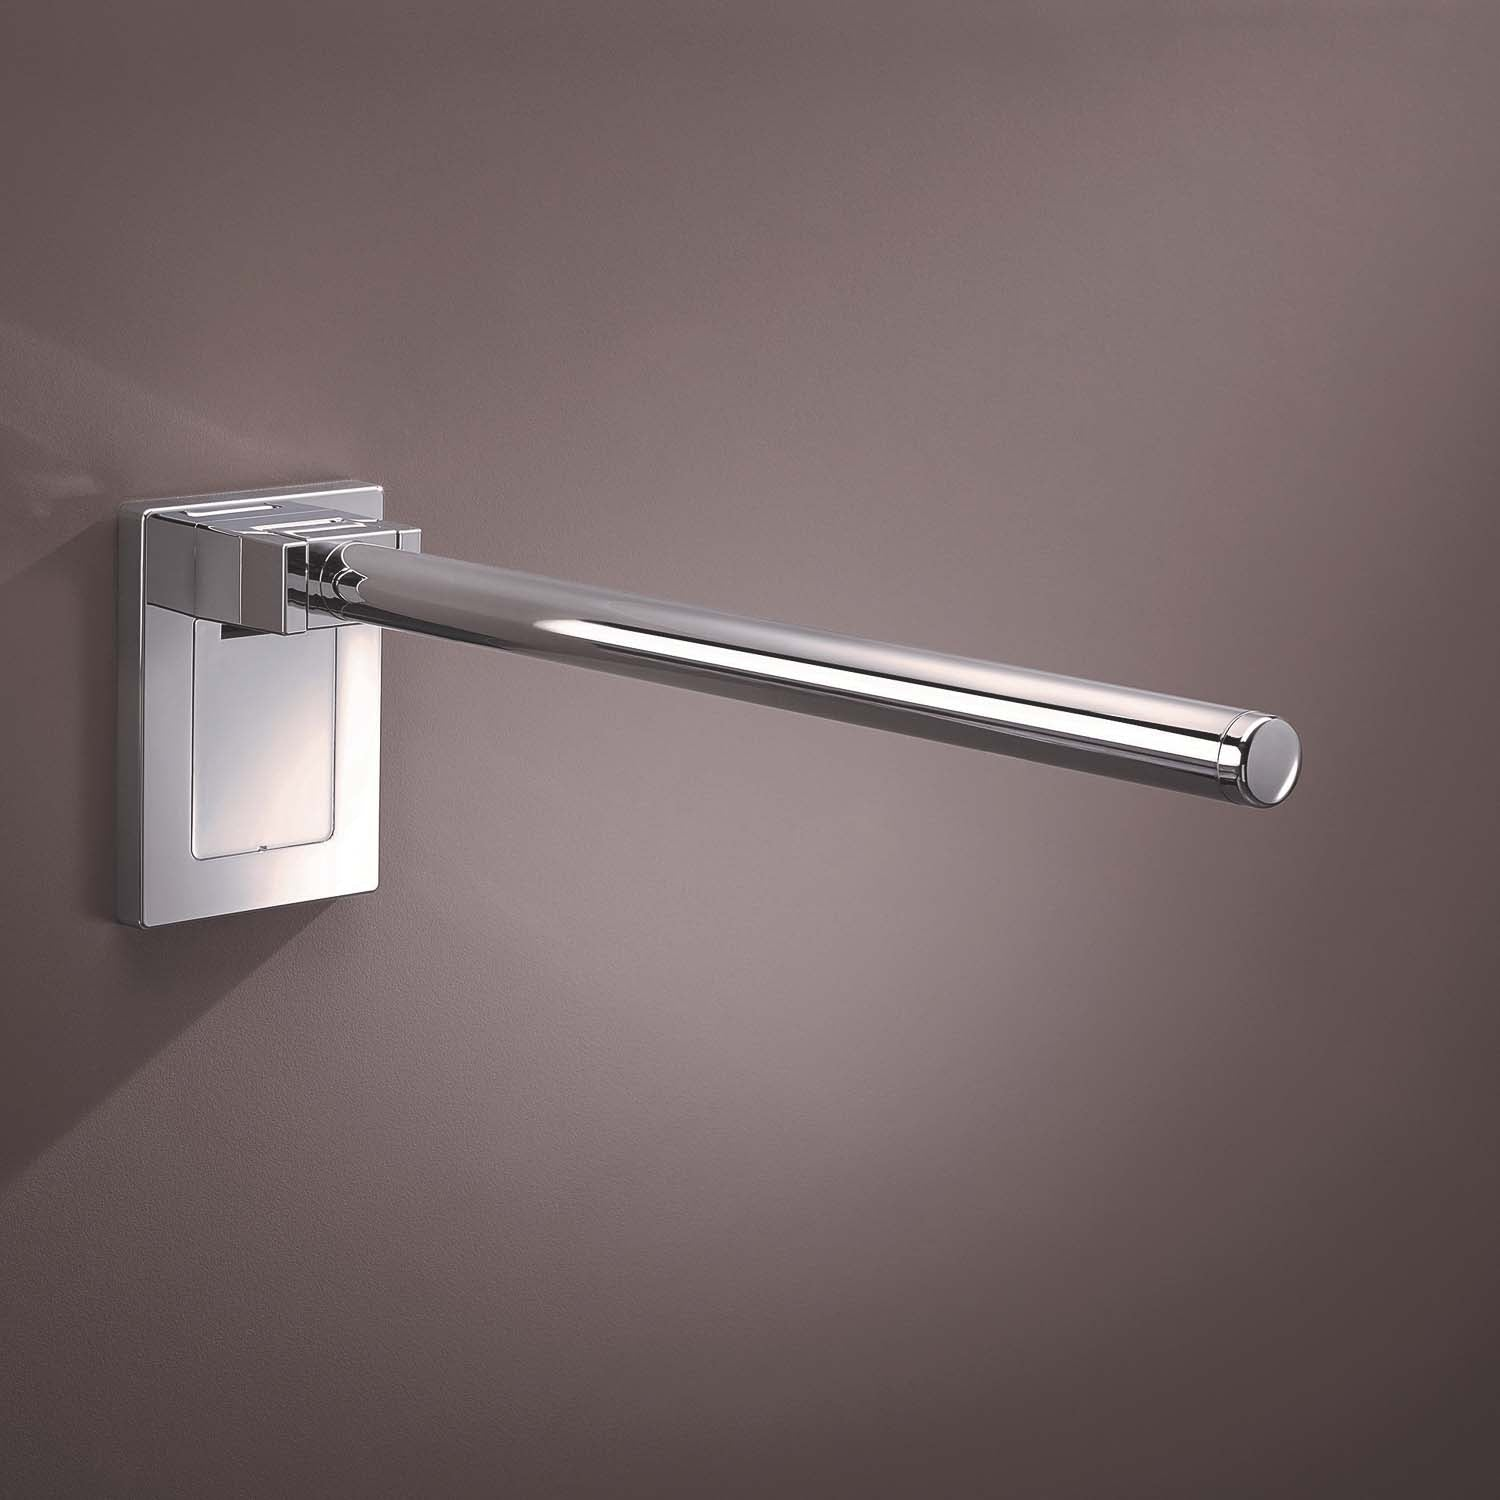 850mm Circula Removable Hinged Grab Rail with a chrome-look finish lifestyle image